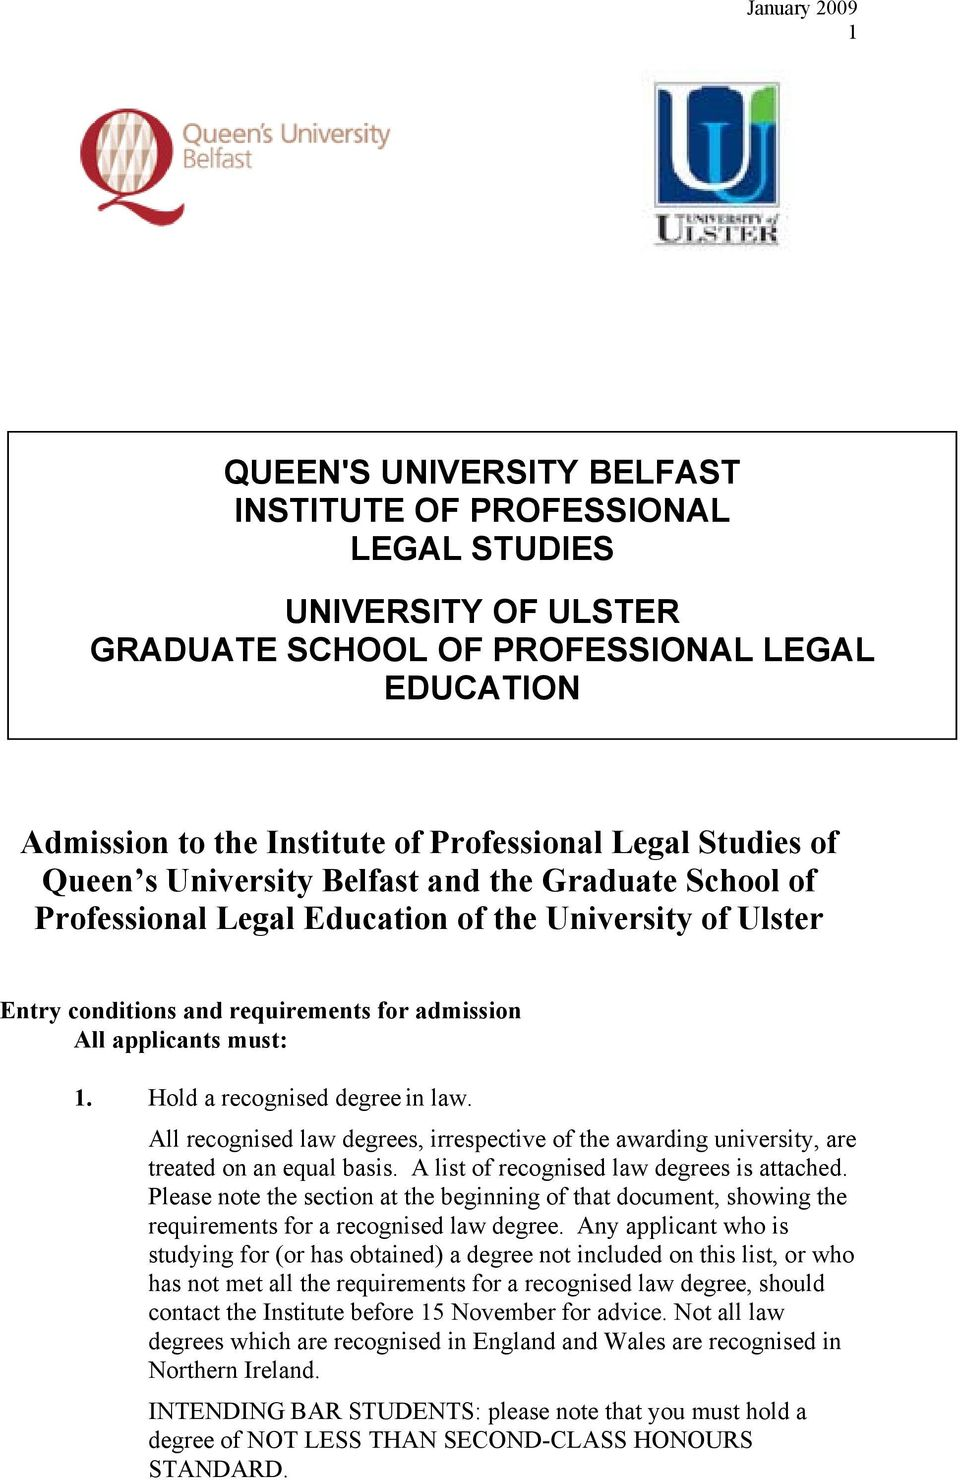 All recognised law degrees, irrespective of the awarding university, are treated on an equal basis. A list of recognised law degrees is attached.